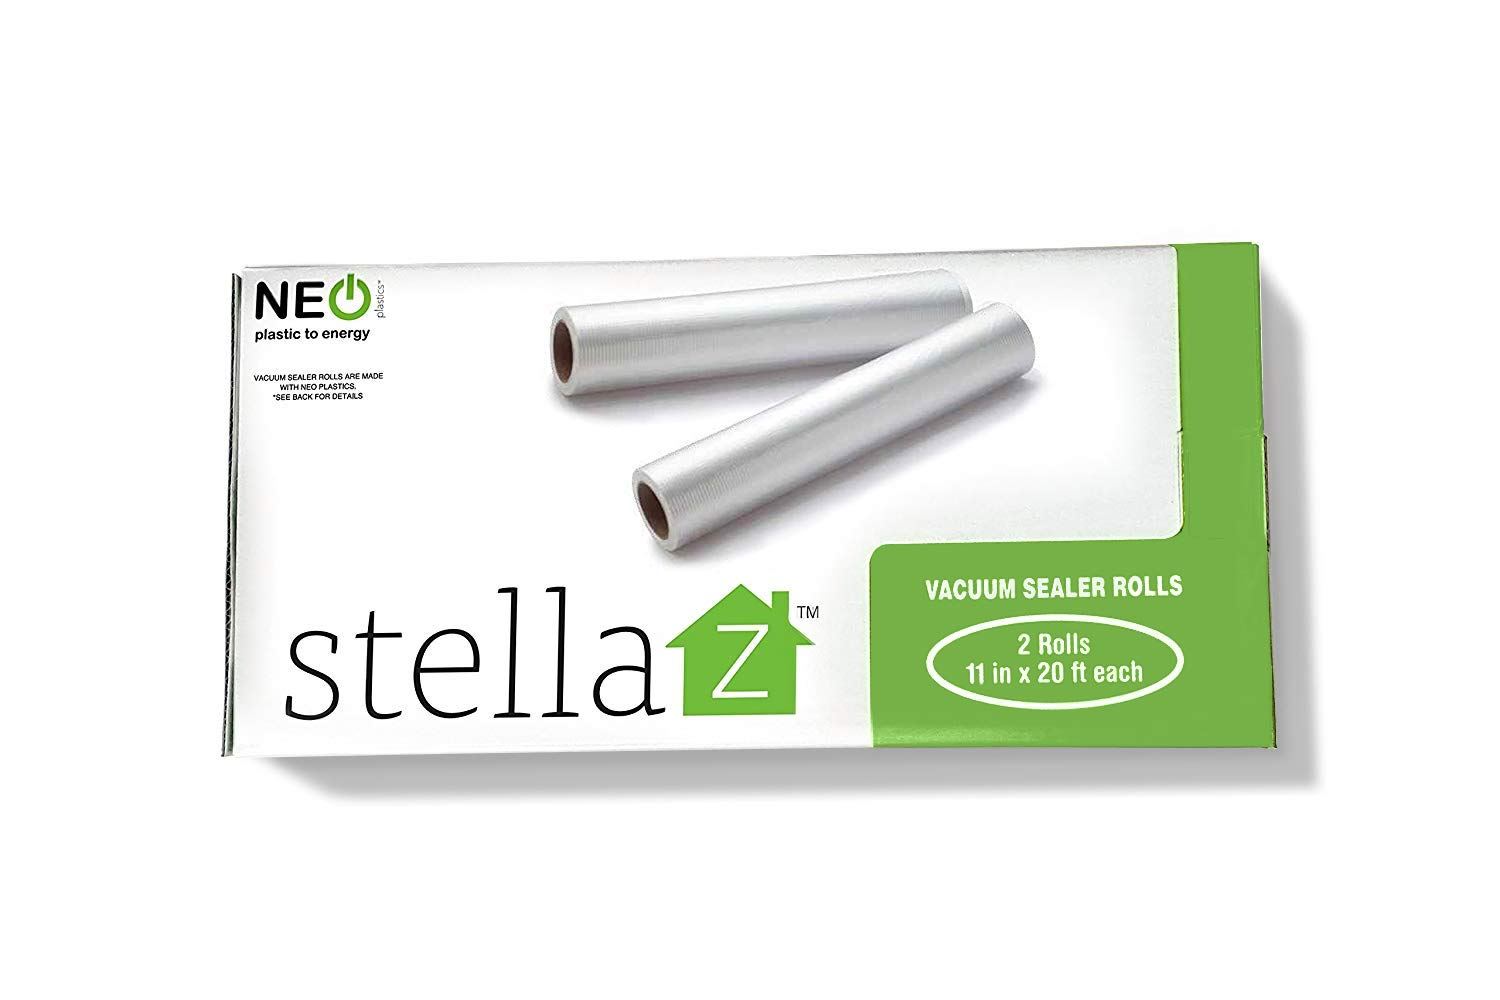 Stella Z Vacuum Sealer Rolls for Food Savers and Sous Vide 2 rolls 11 in x 20 ft each Commercial Grade Rolls with NEO Plastics.